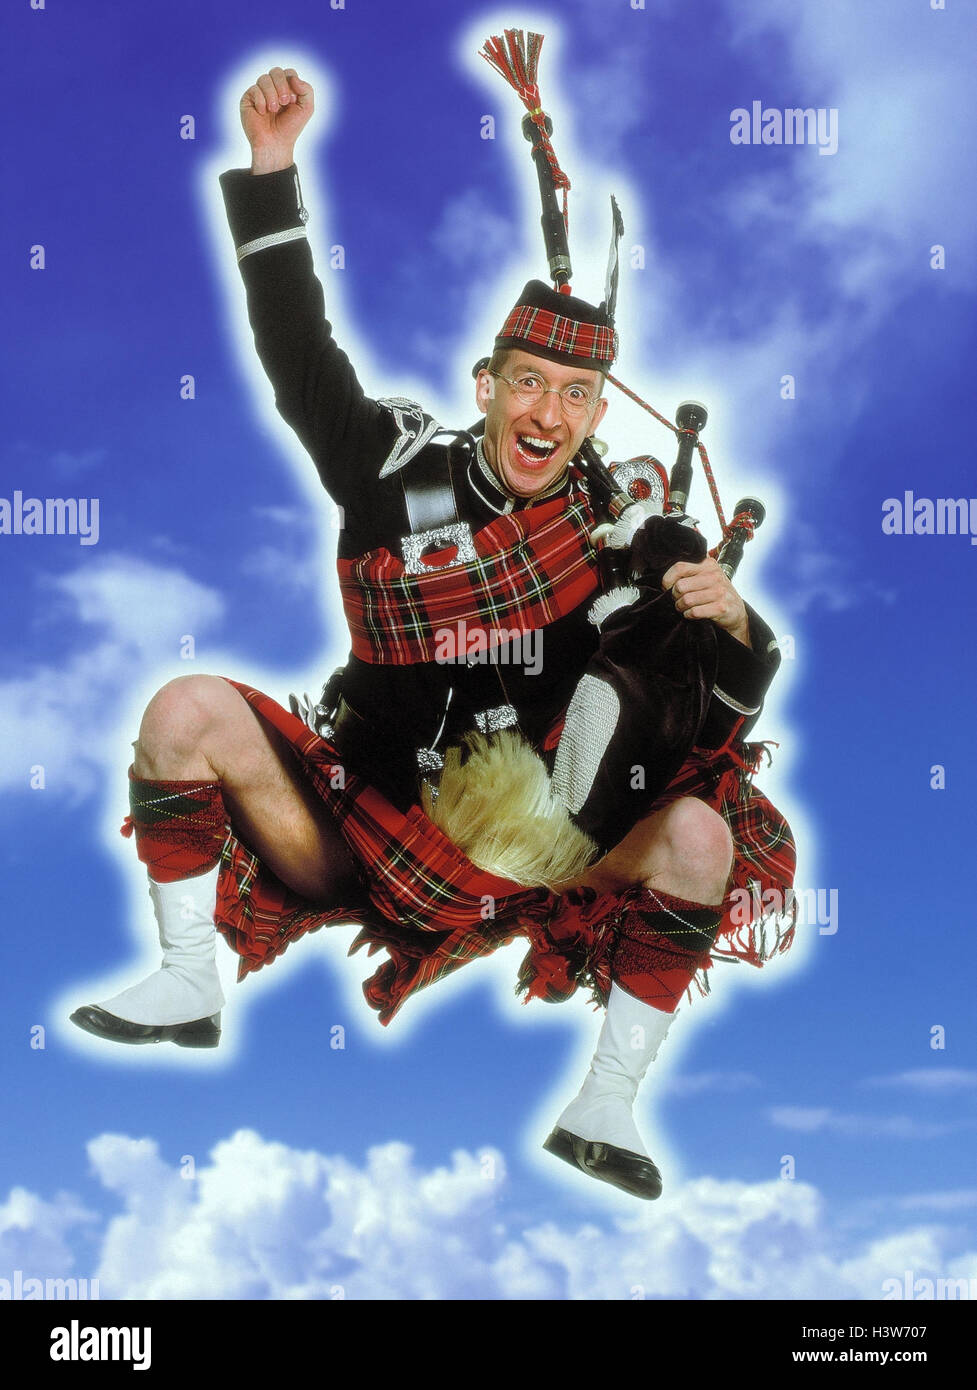 Bulkheads, kilt, bagpipes, caper, gesture, enthusiasm, cloudy sky studio, man, national costume, clothes, traditionally, - Stock Image